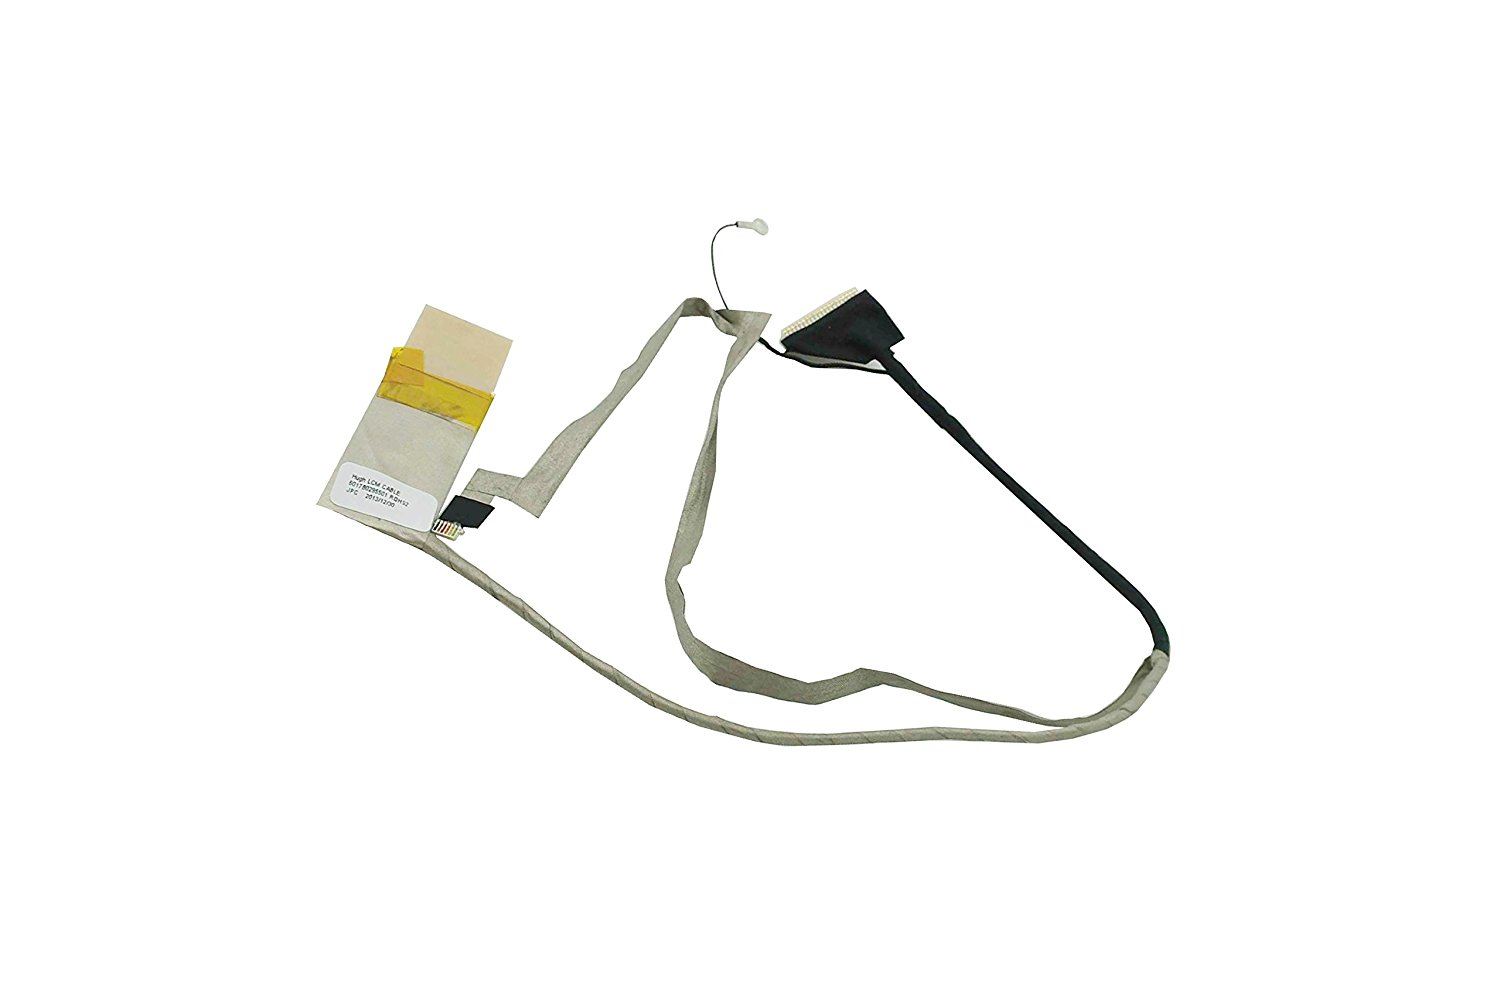 639512-001 New LCD LED LVDS Video Display Screen Cable for HP Pavilion G6 G6-1000 G6-1A G6-1B G6-1C G6-1D Series P//N 639510-001 6017B0295501